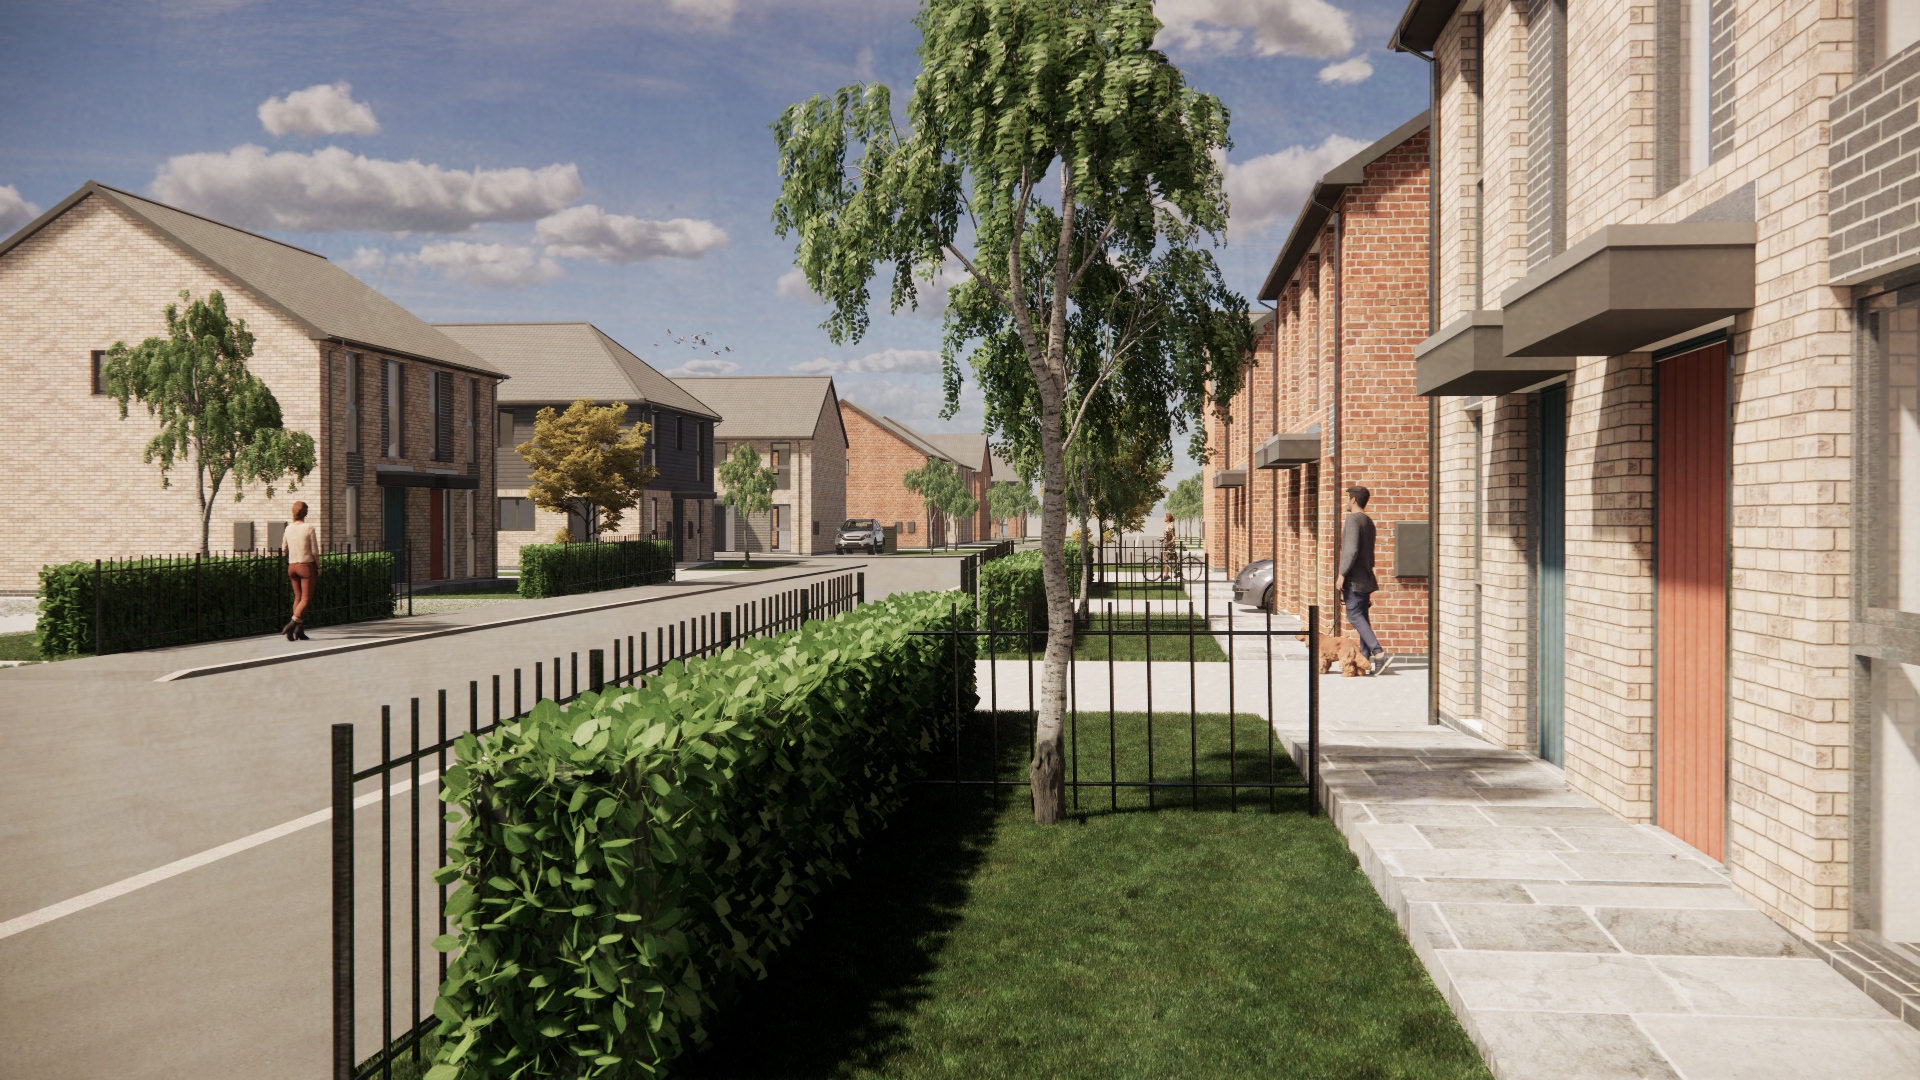 Longhurst Group submits plans for 135 affordable homes in Boston